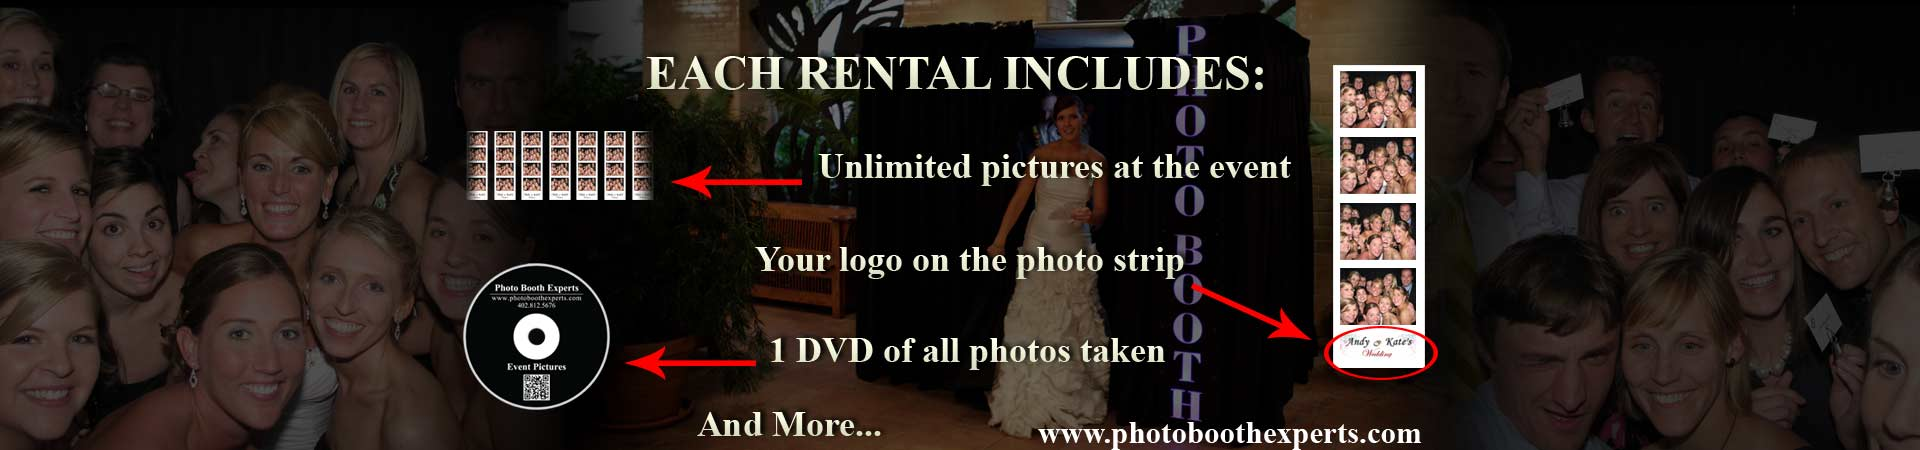 Included in every rental: Unlimited photos at the event, 1 DVD of all the photos taken, logo on the photo strip and more